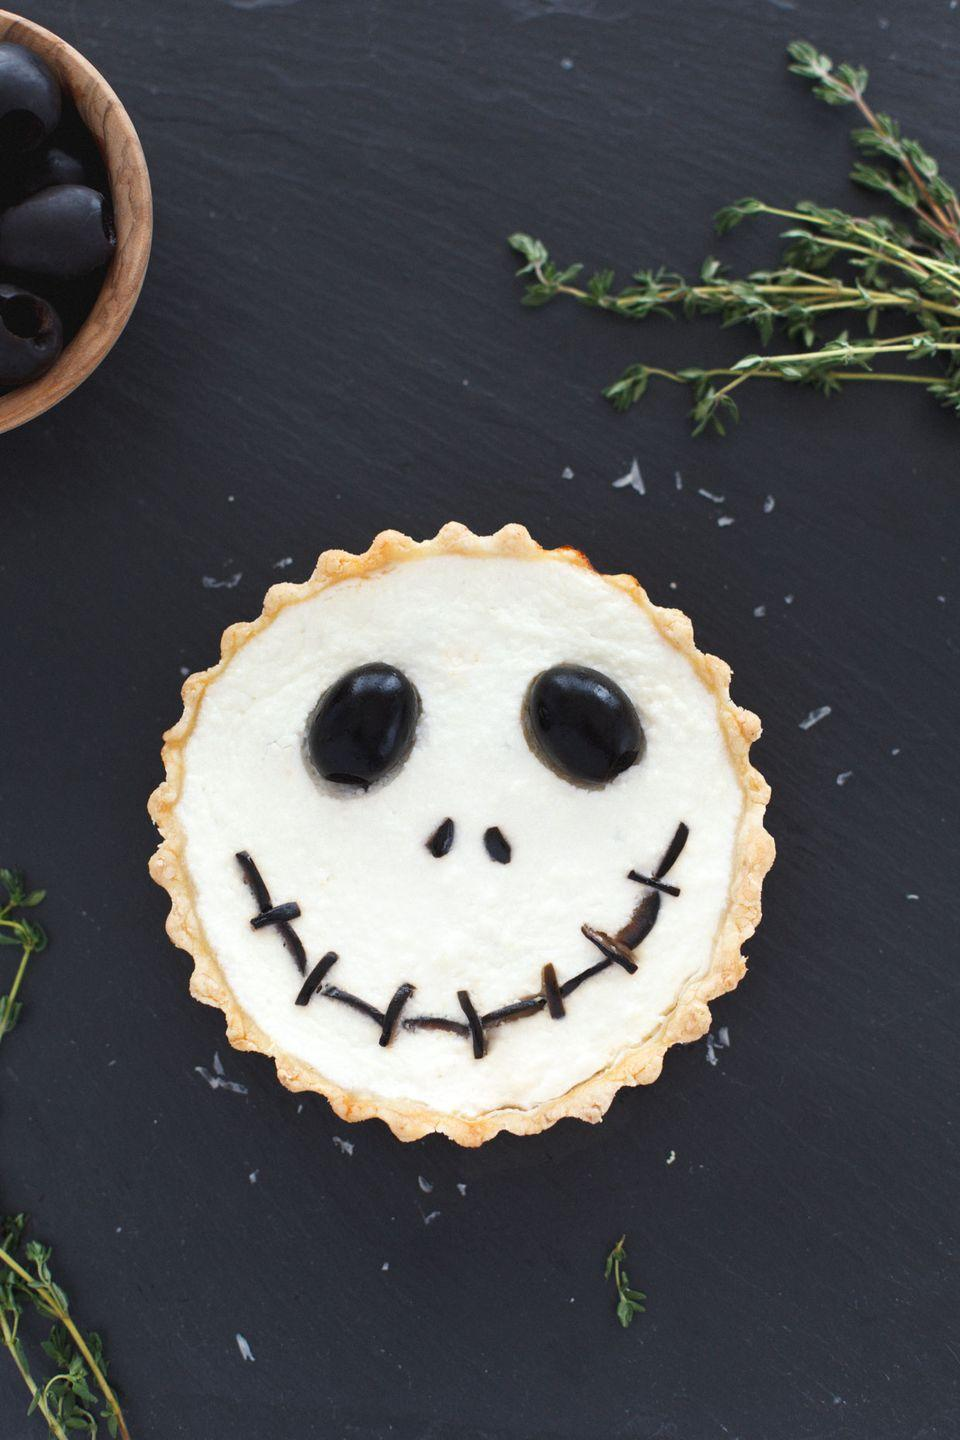 """<p>For a more elevated Halloween dinner menu, consider these refined ricotta tarts that get a dash of whimsy from some cleverly placed black olives. </p><p><a class=""""link rapid-noclick-resp"""" href=""""https://www.snixykitchen.com/halloween-jack-skellington-ricotta-olive-tarts/"""" rel=""""nofollow noopener"""" target=""""_blank"""" data-ylk=""""slk:GET THE RECIPE"""">GET THE RECIPE</a></p>"""